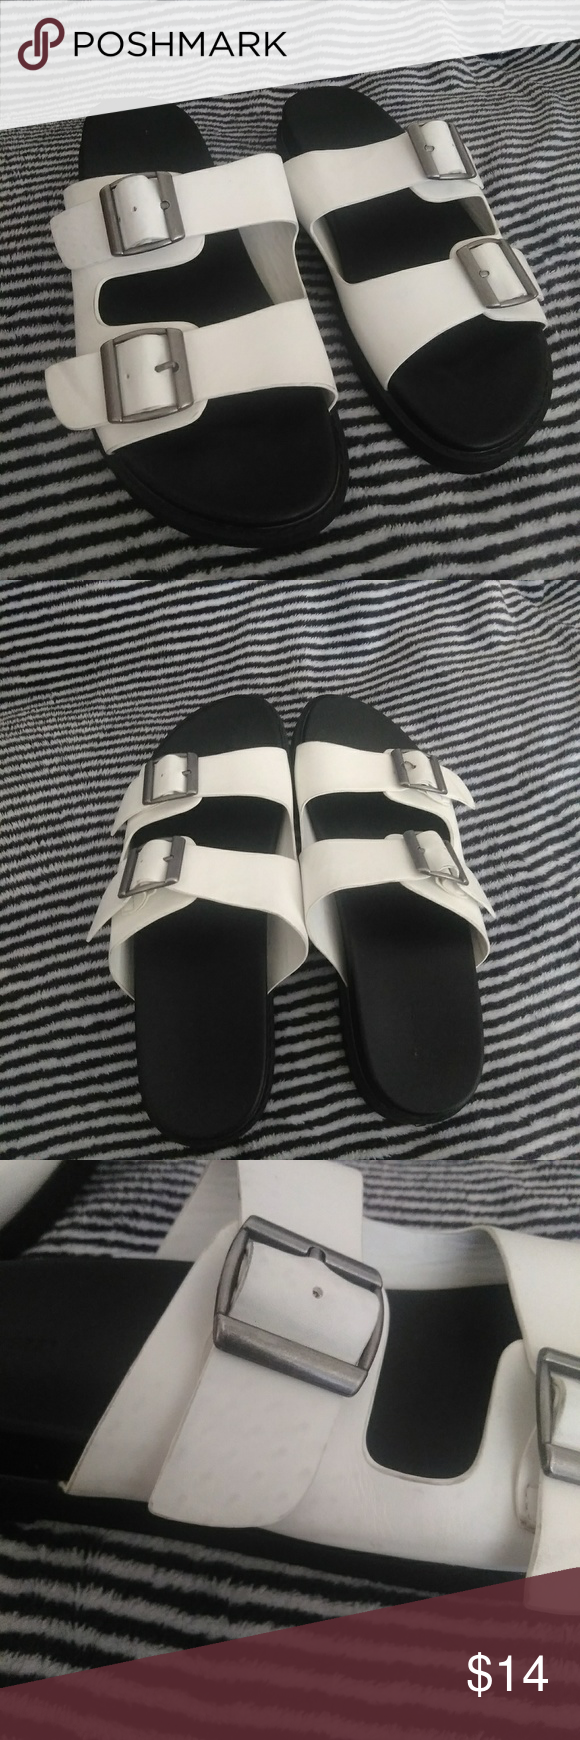 3fbe1cae7896 Forever 21 Birkenstock Style Sandals Size 8 Good condition Worn once Size 8  Has a few small light marks on the side (shown in pics) Forever 21 Shoes  Sandals